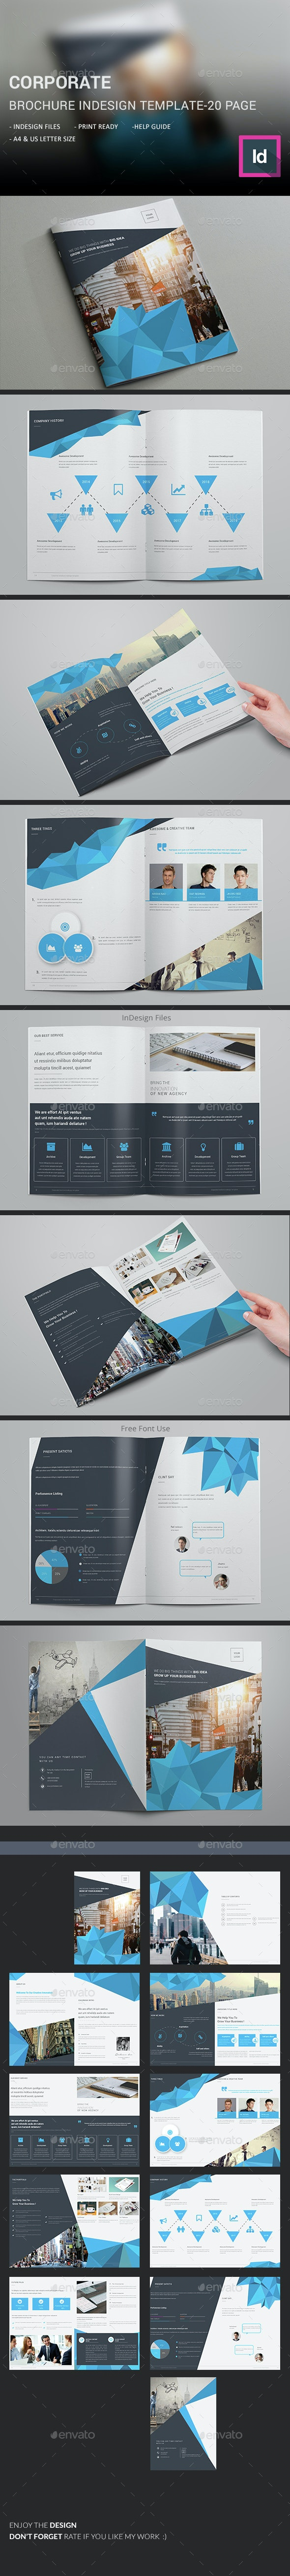 Corporate Brochure InDesign Template  - Corporate Brochures